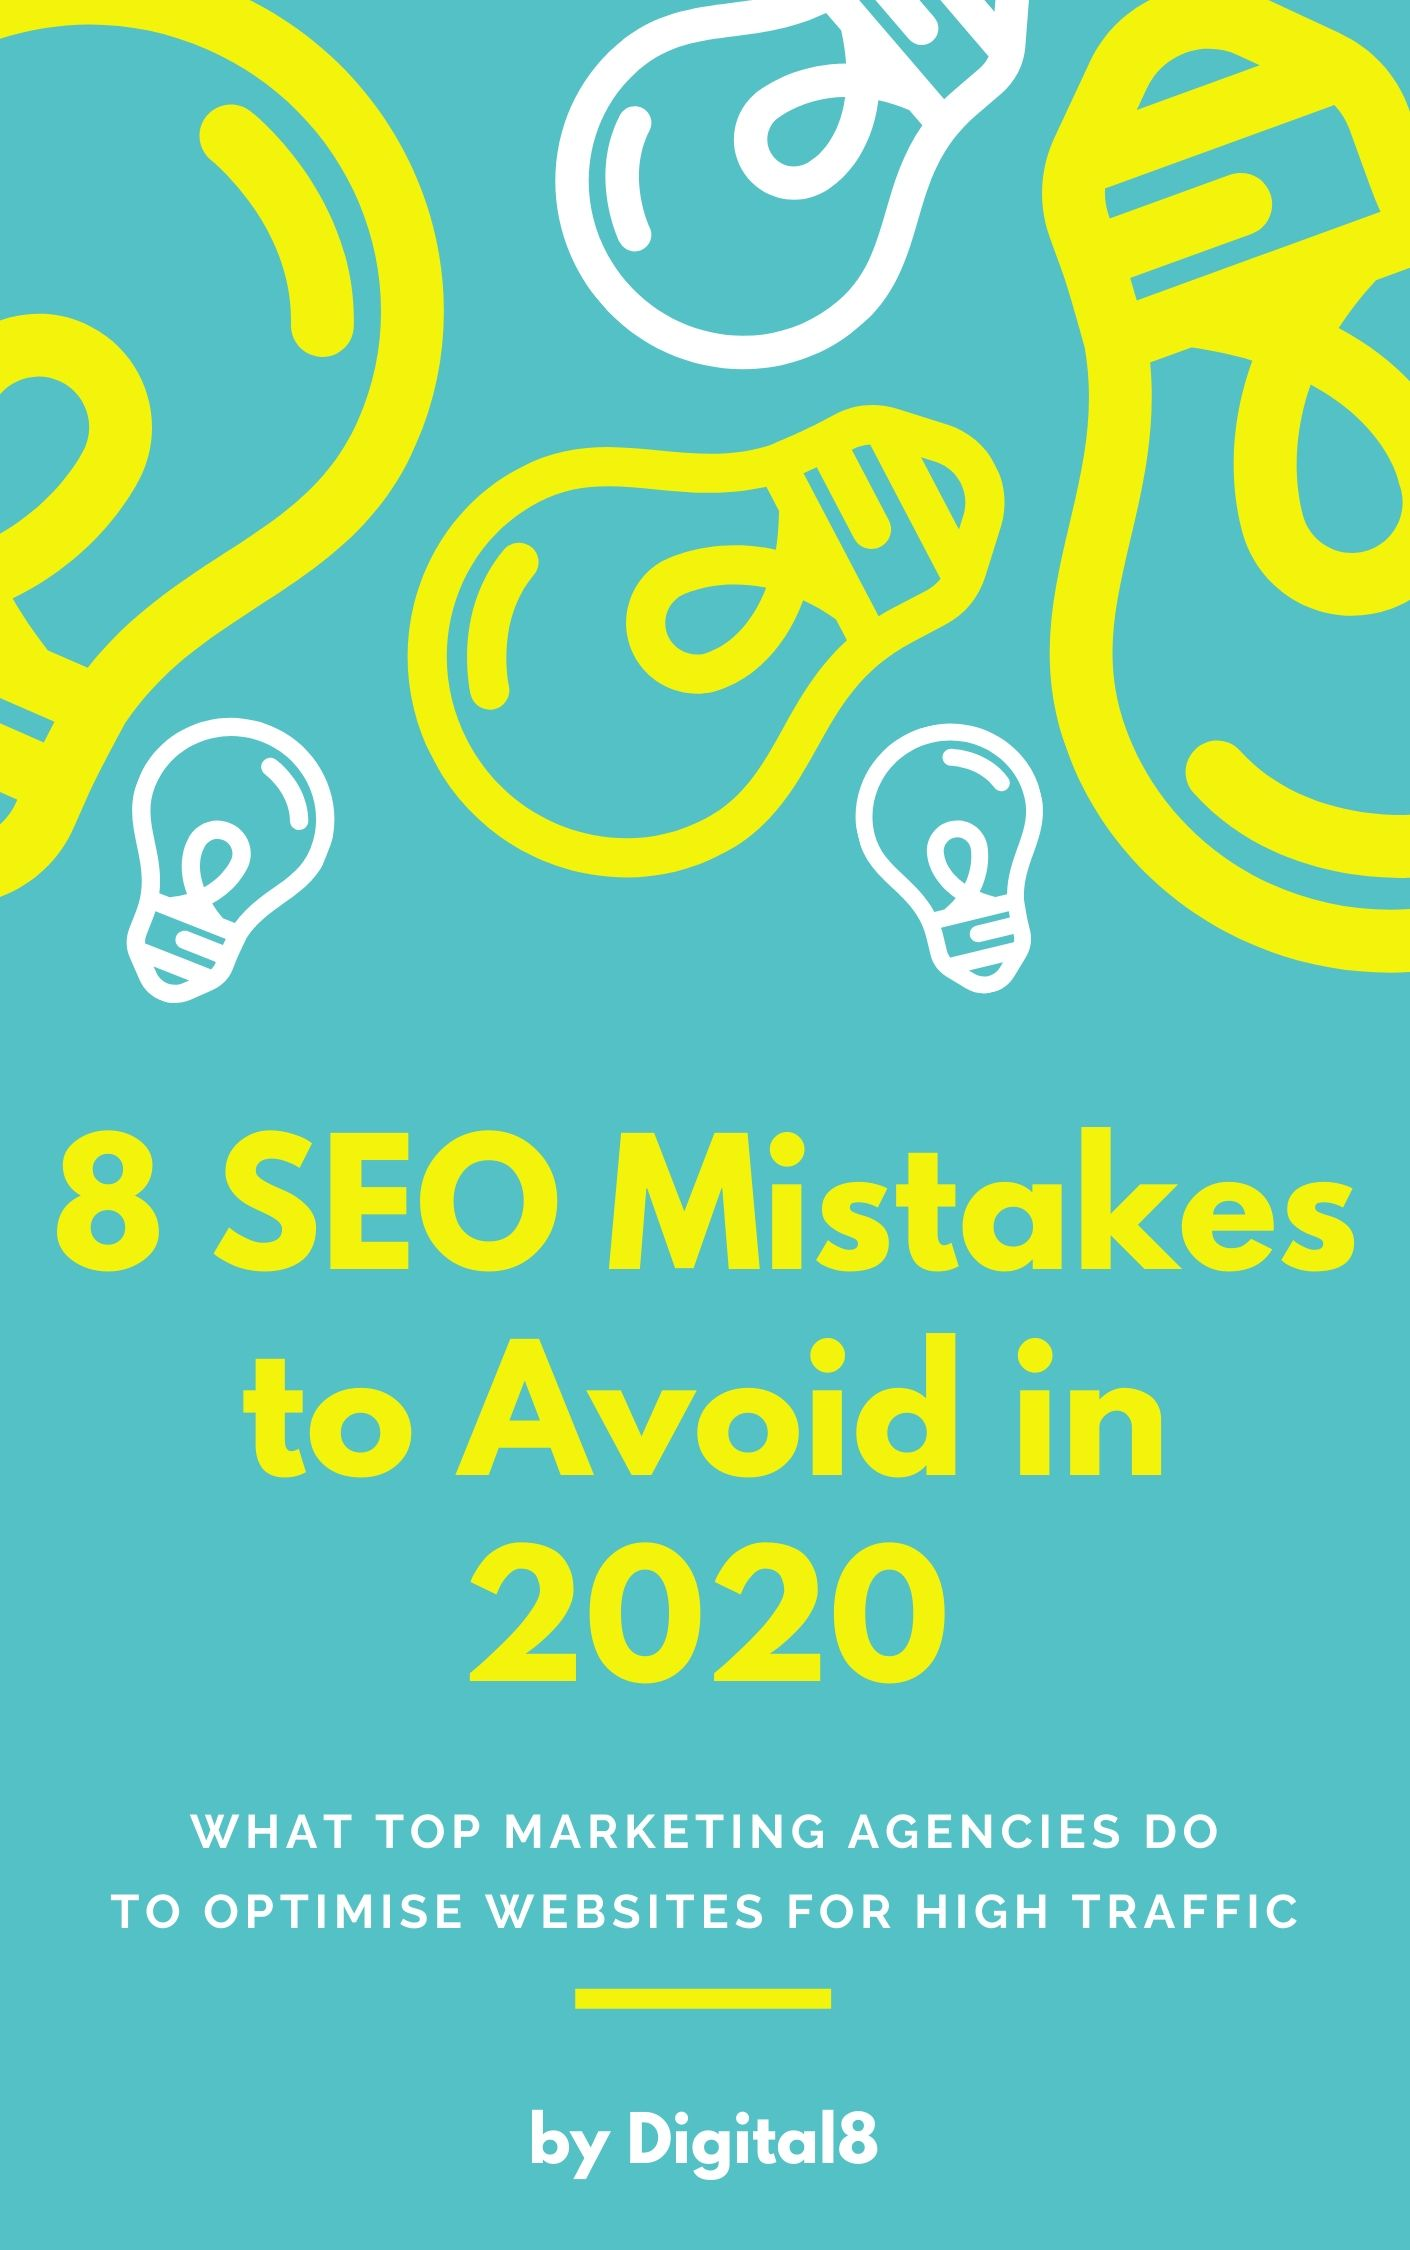 8 SEO Mistakes to Avoid in 2020